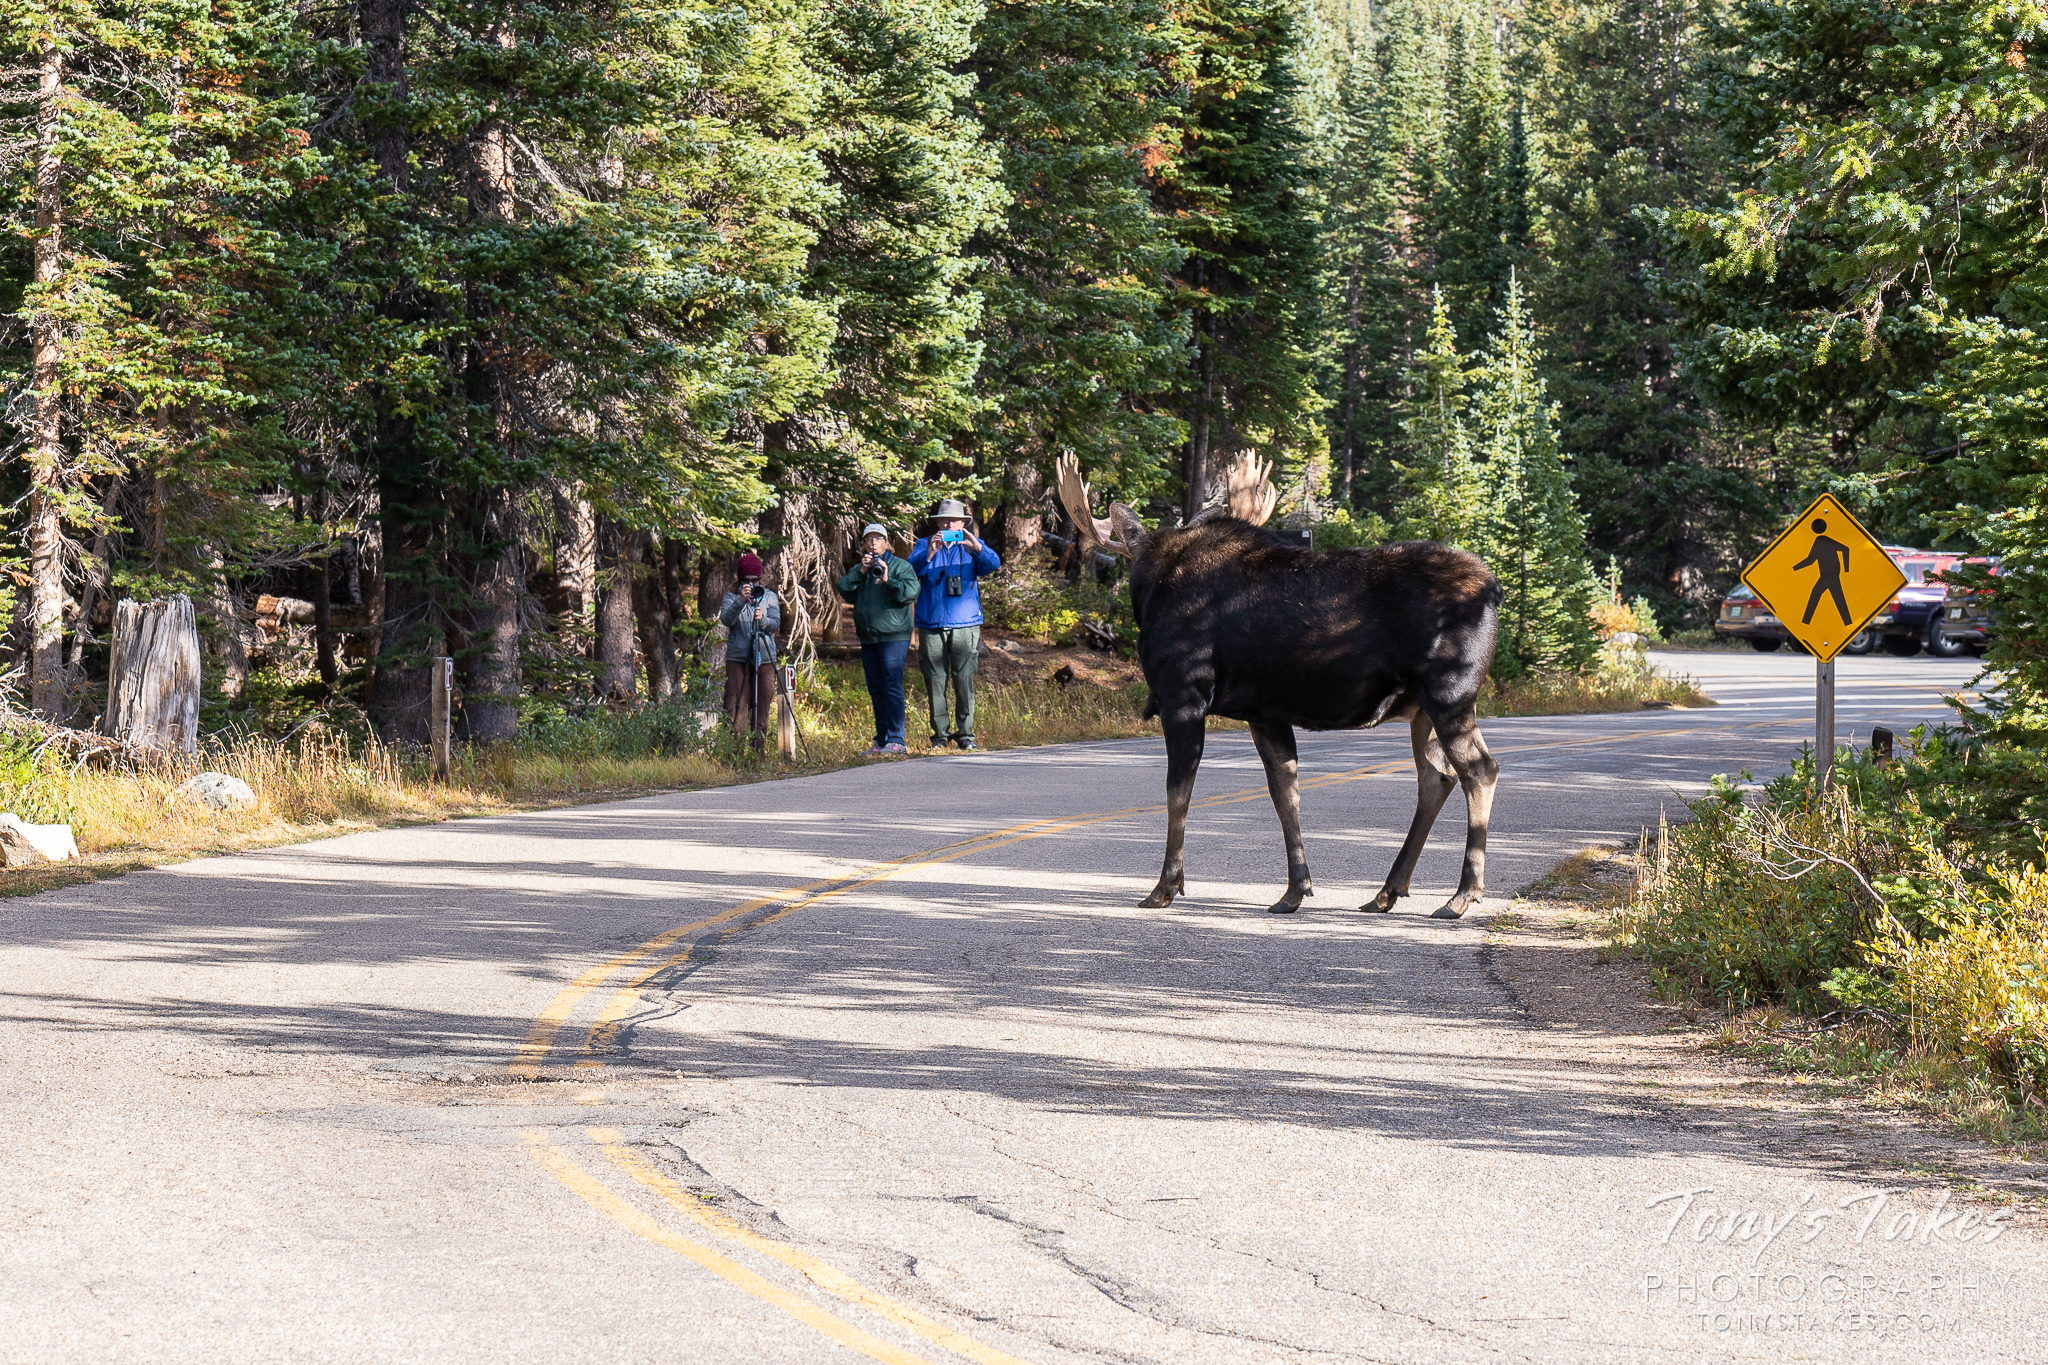 Time to change the sign to Moose crossing